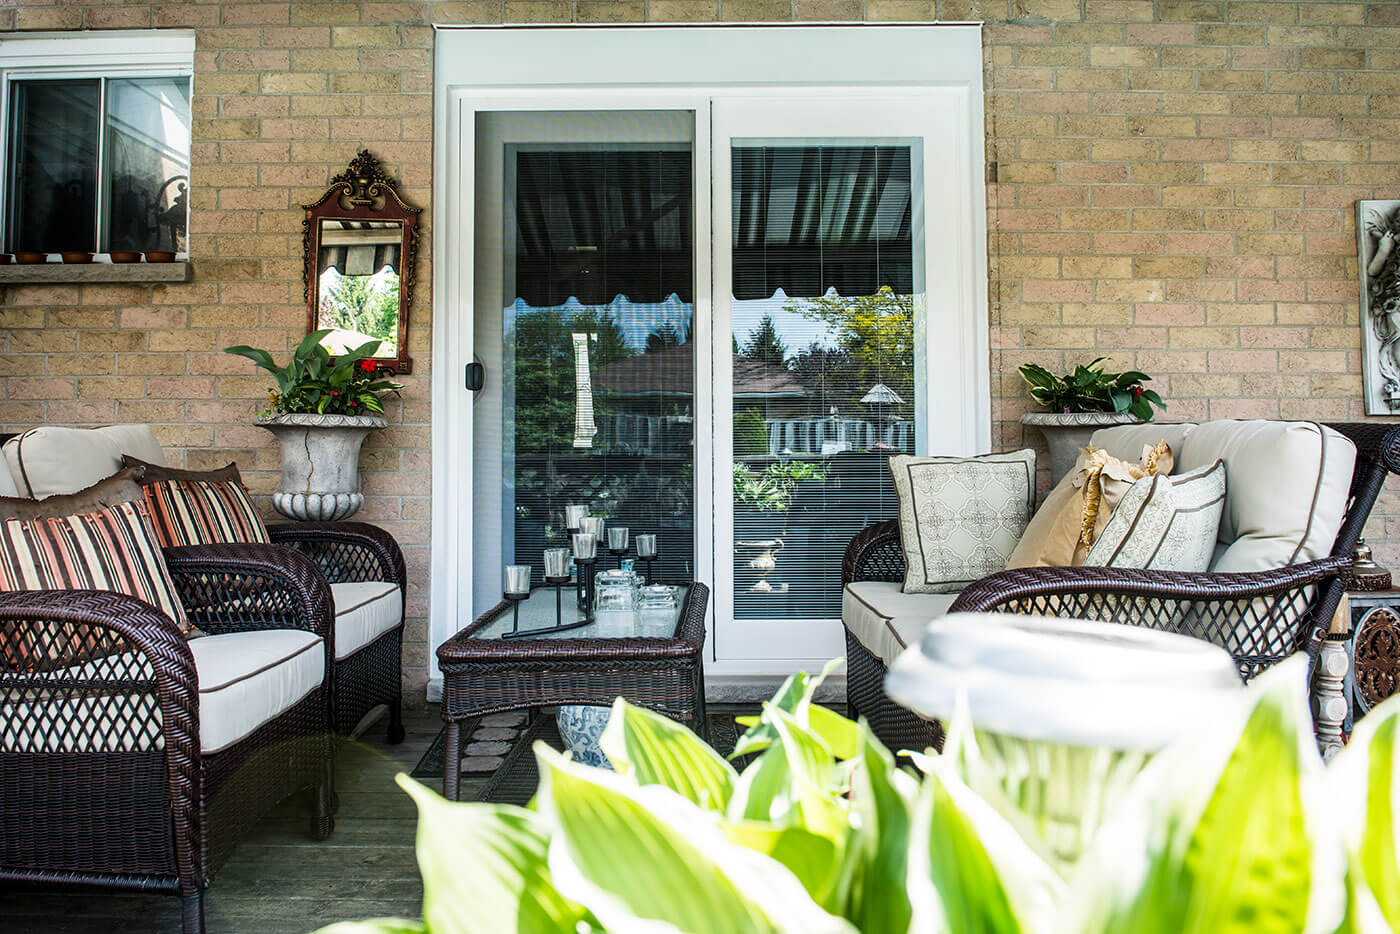 Backyard Patio of Gorgeous Home Showcasing New Sliding Glass Patio Doors